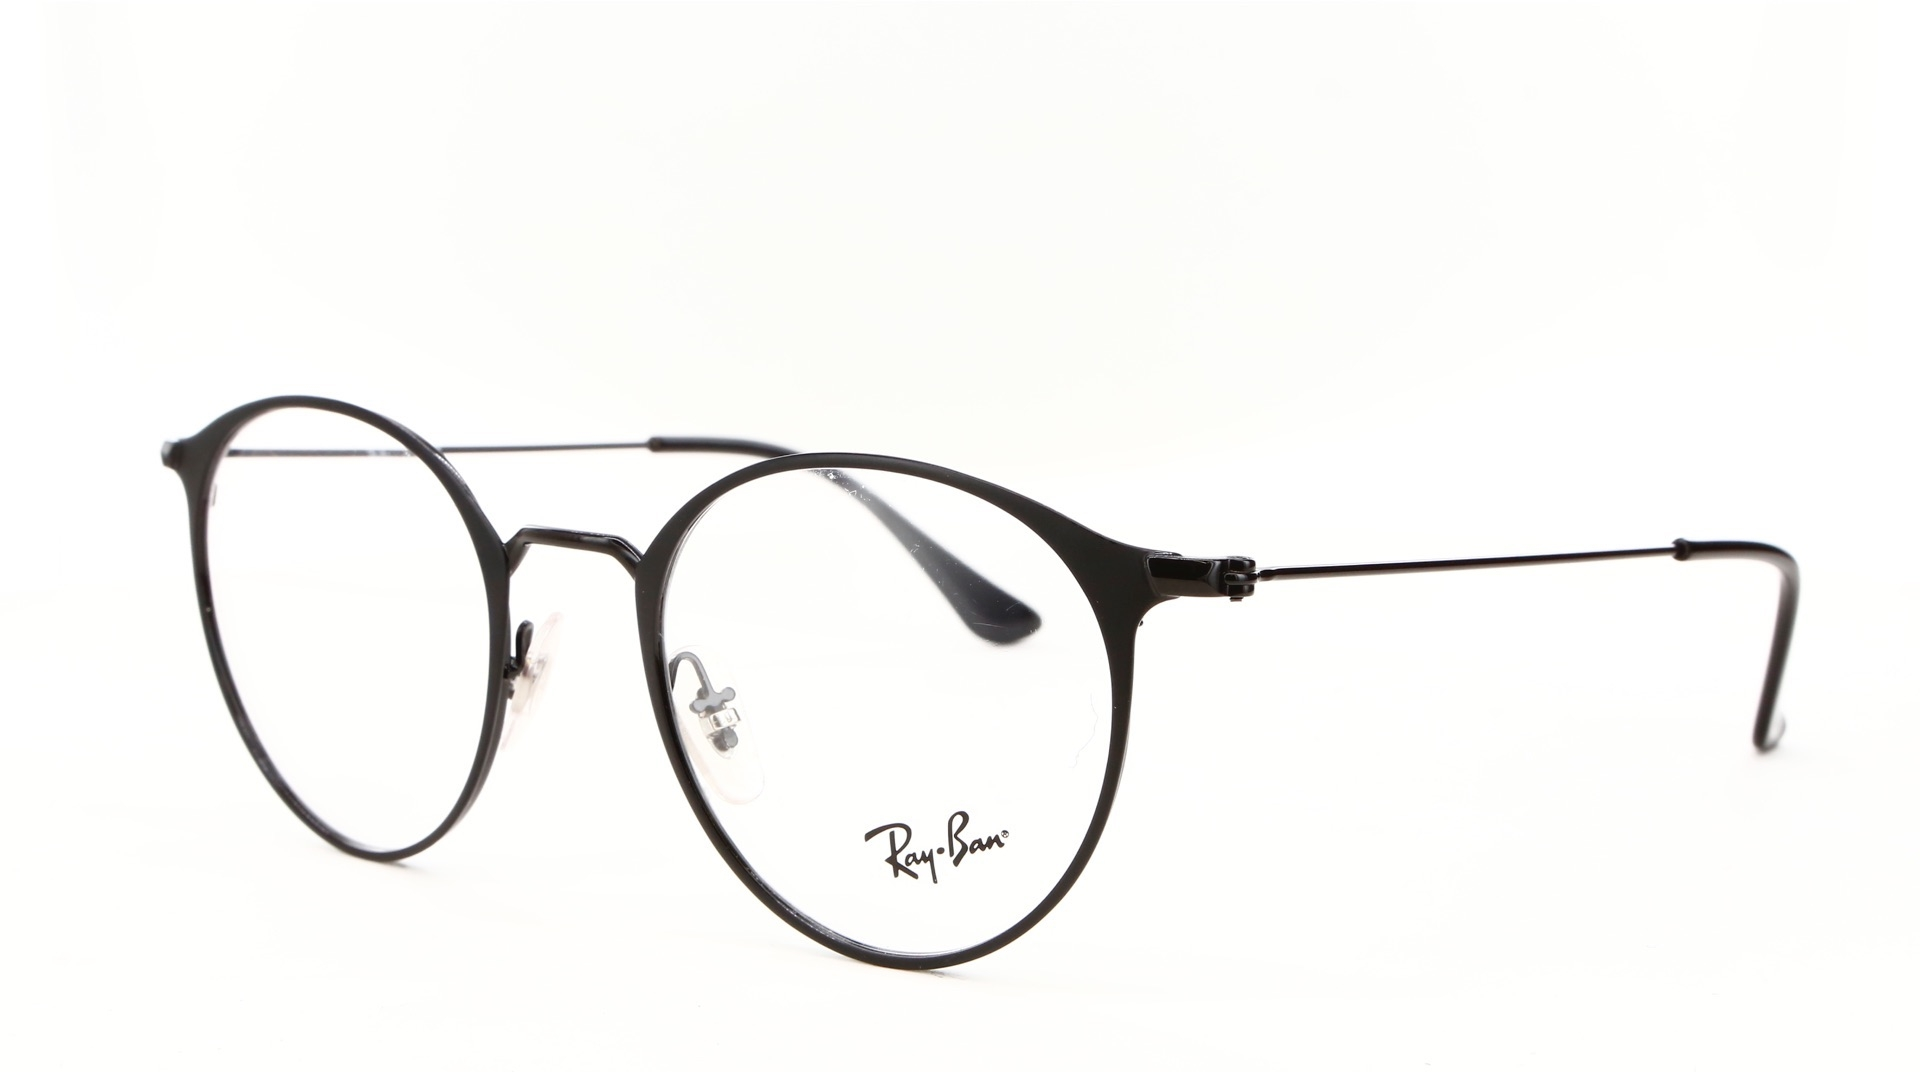 Ray-Ban - ref: 76401